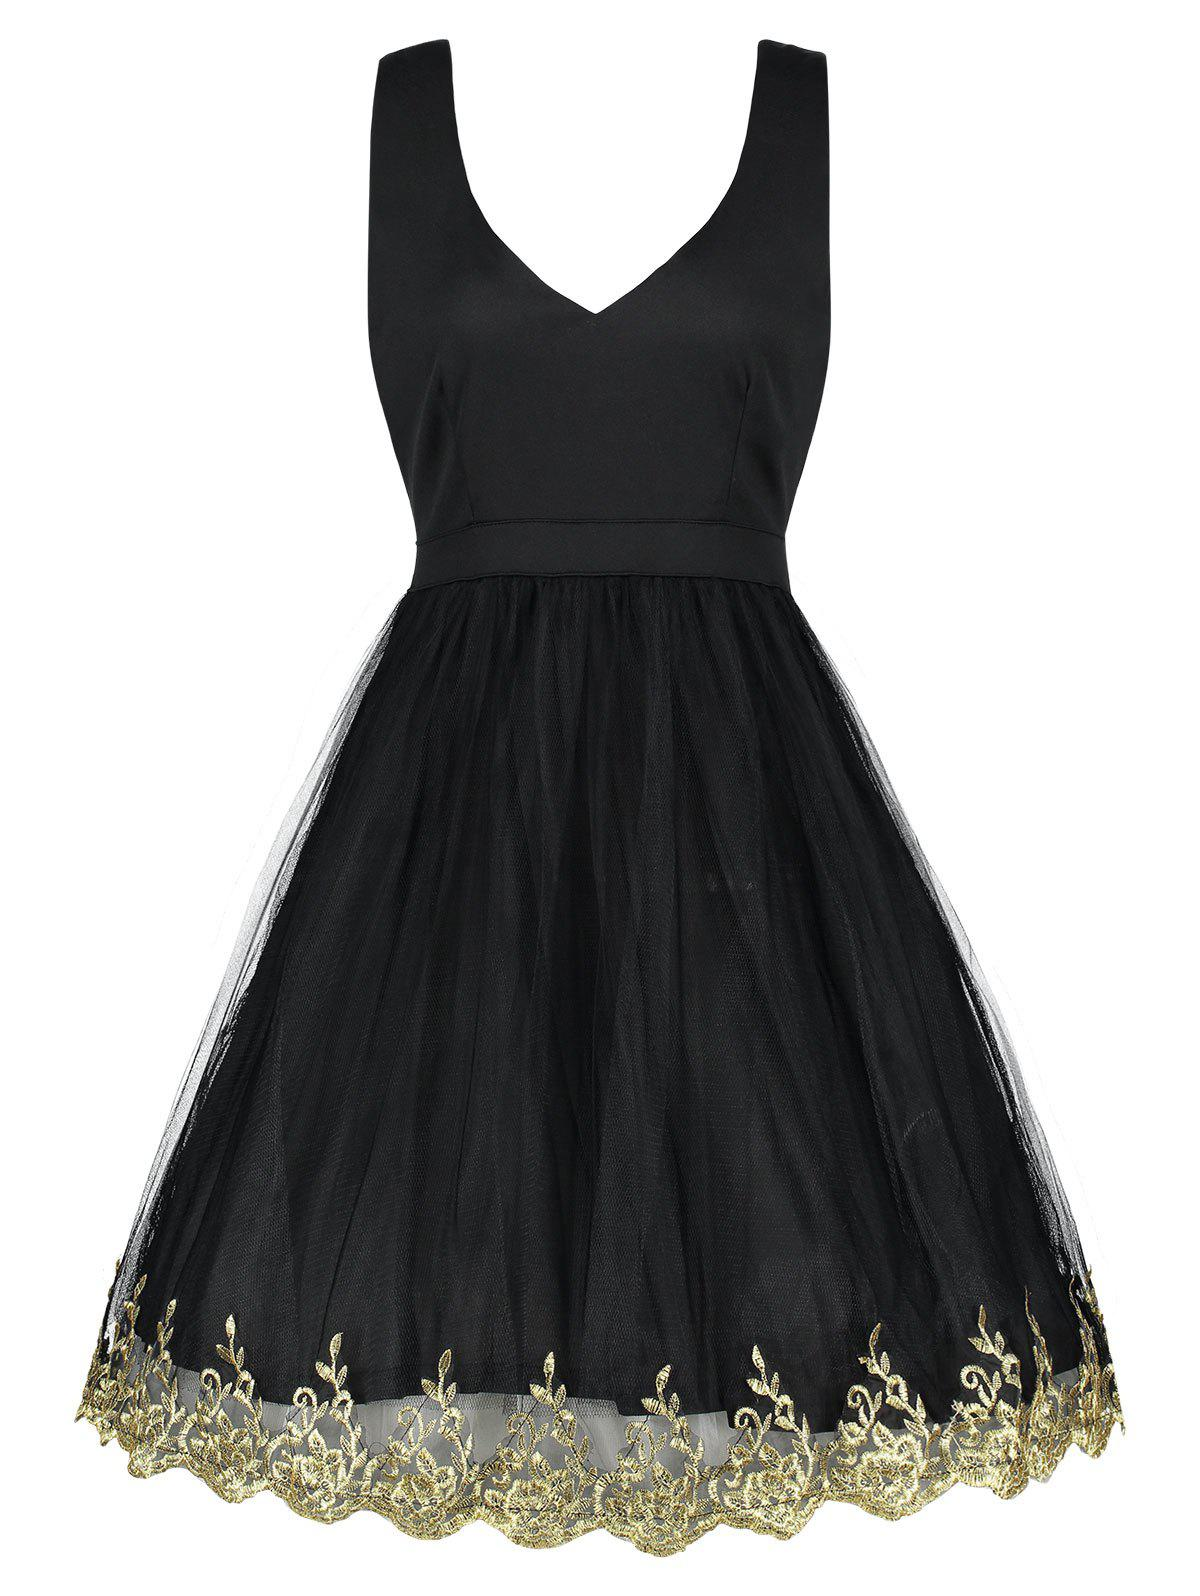 Robe Cocktail à Col en V - Noir M